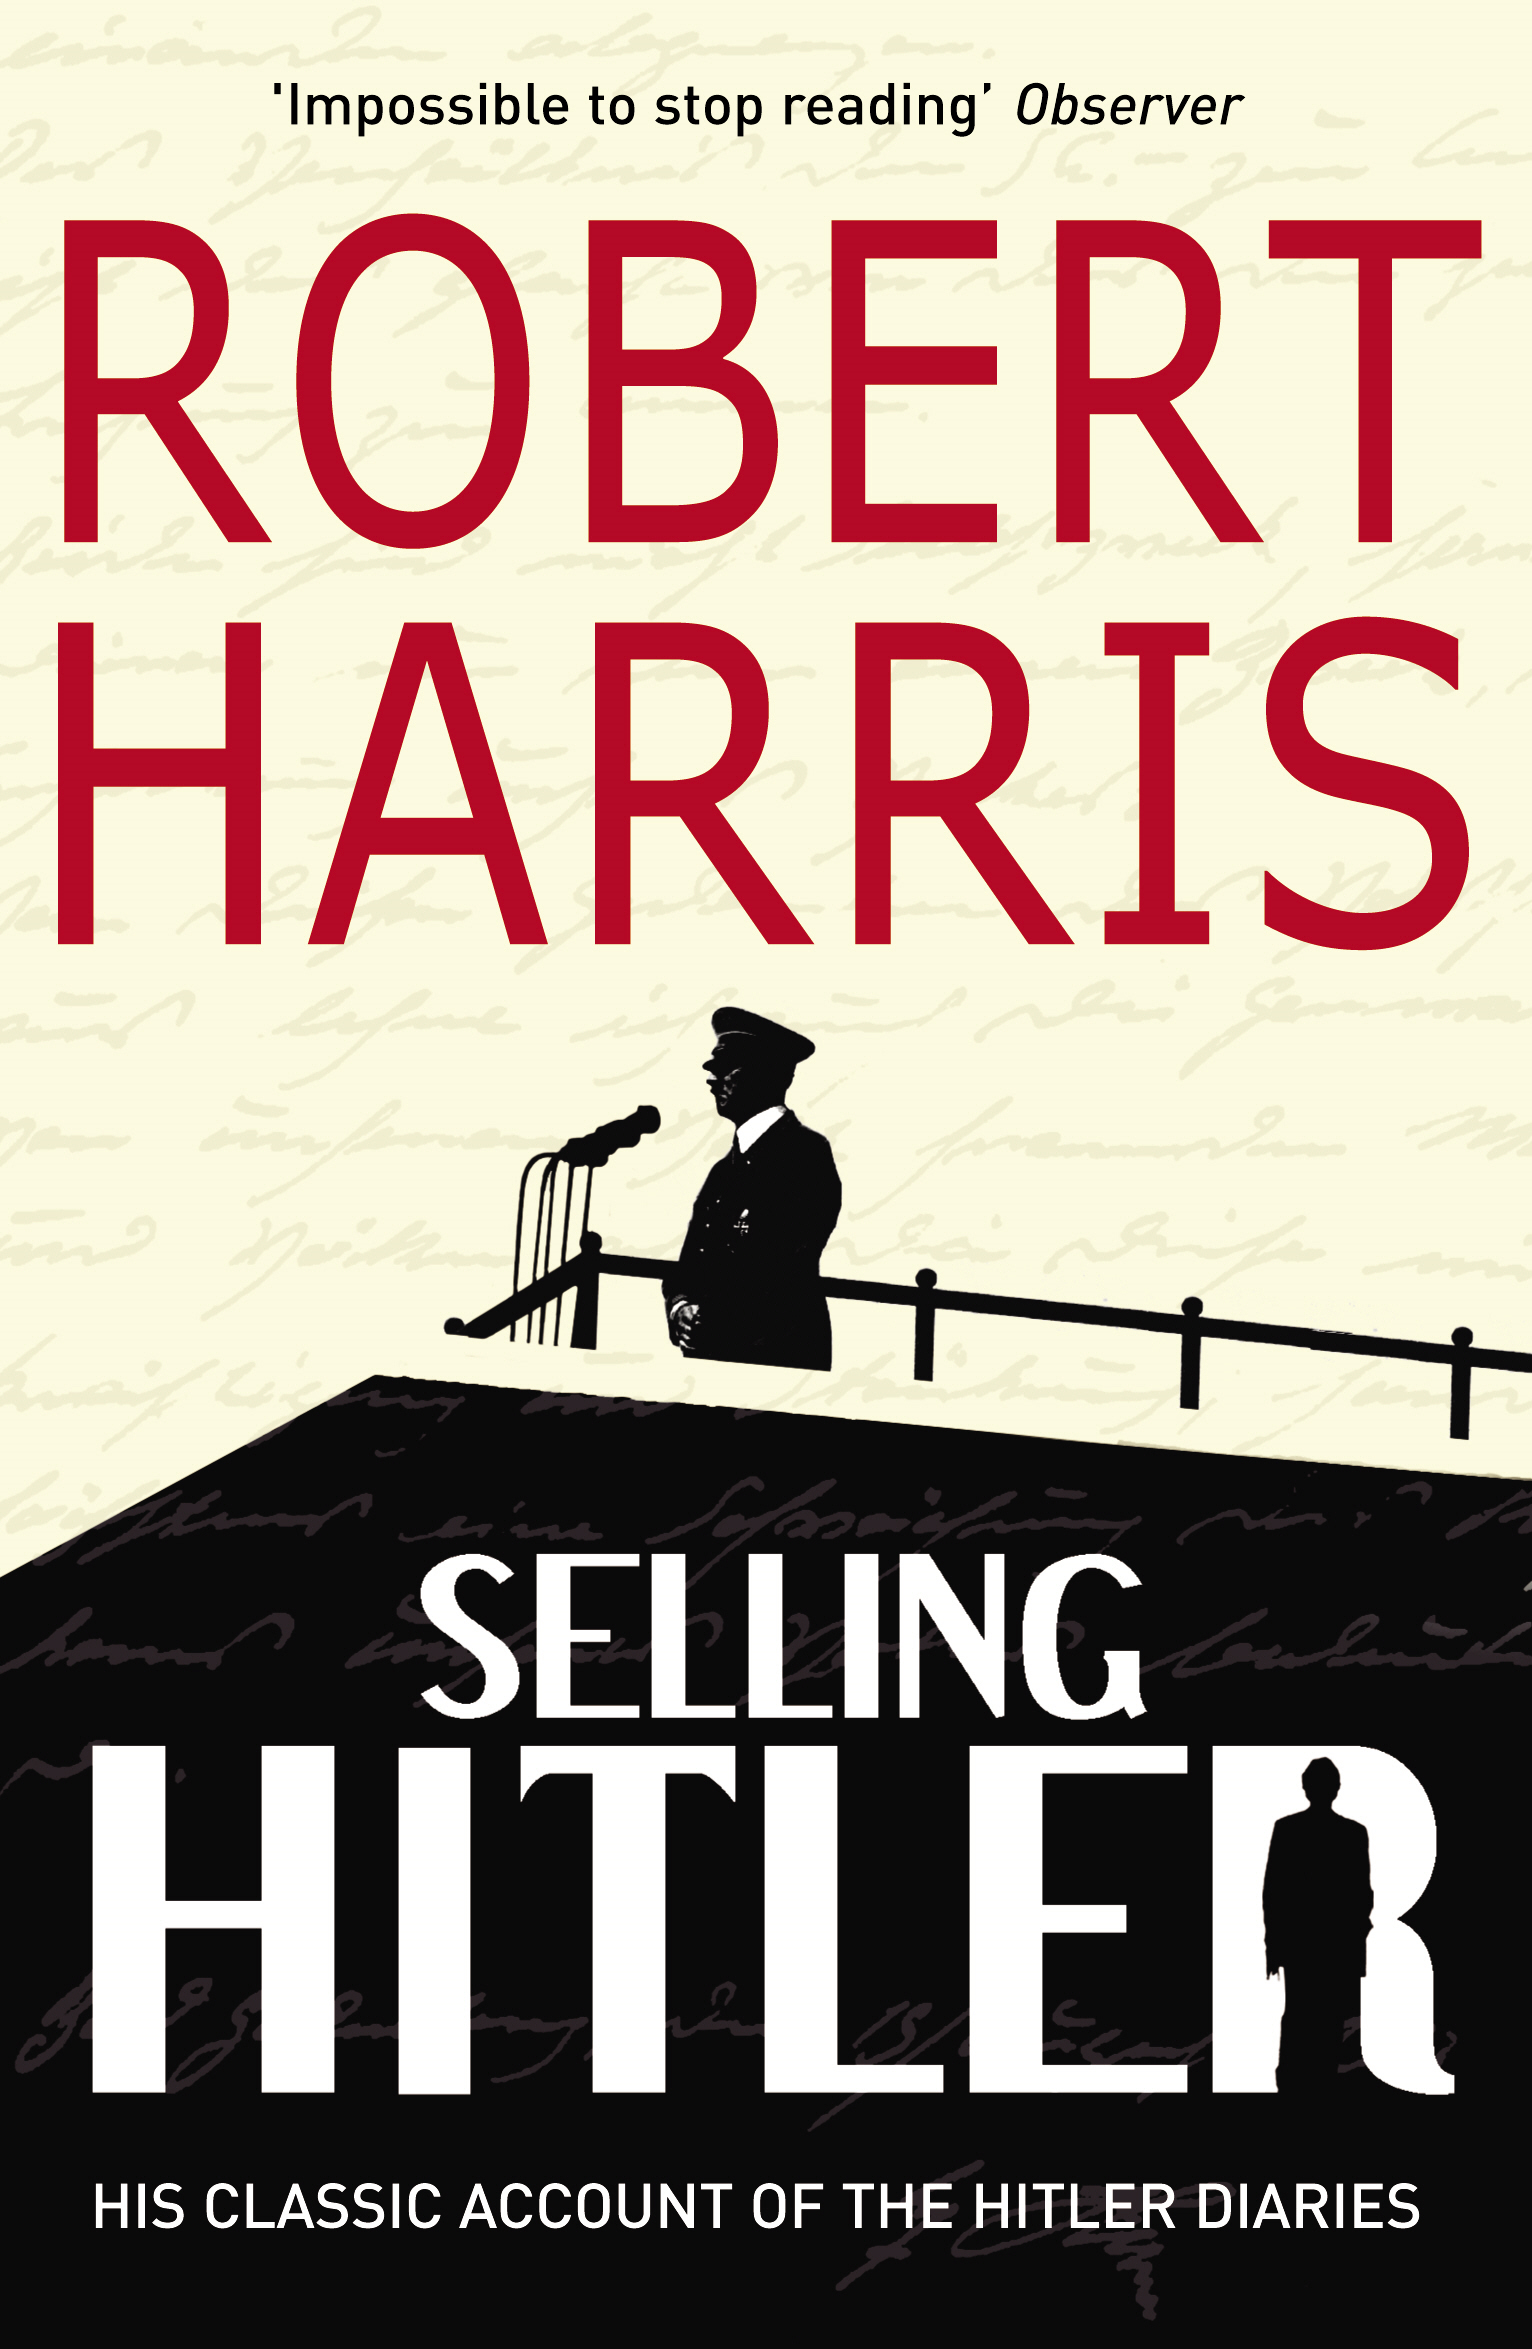 Selling Hitler The Story of the Hitler Diaries